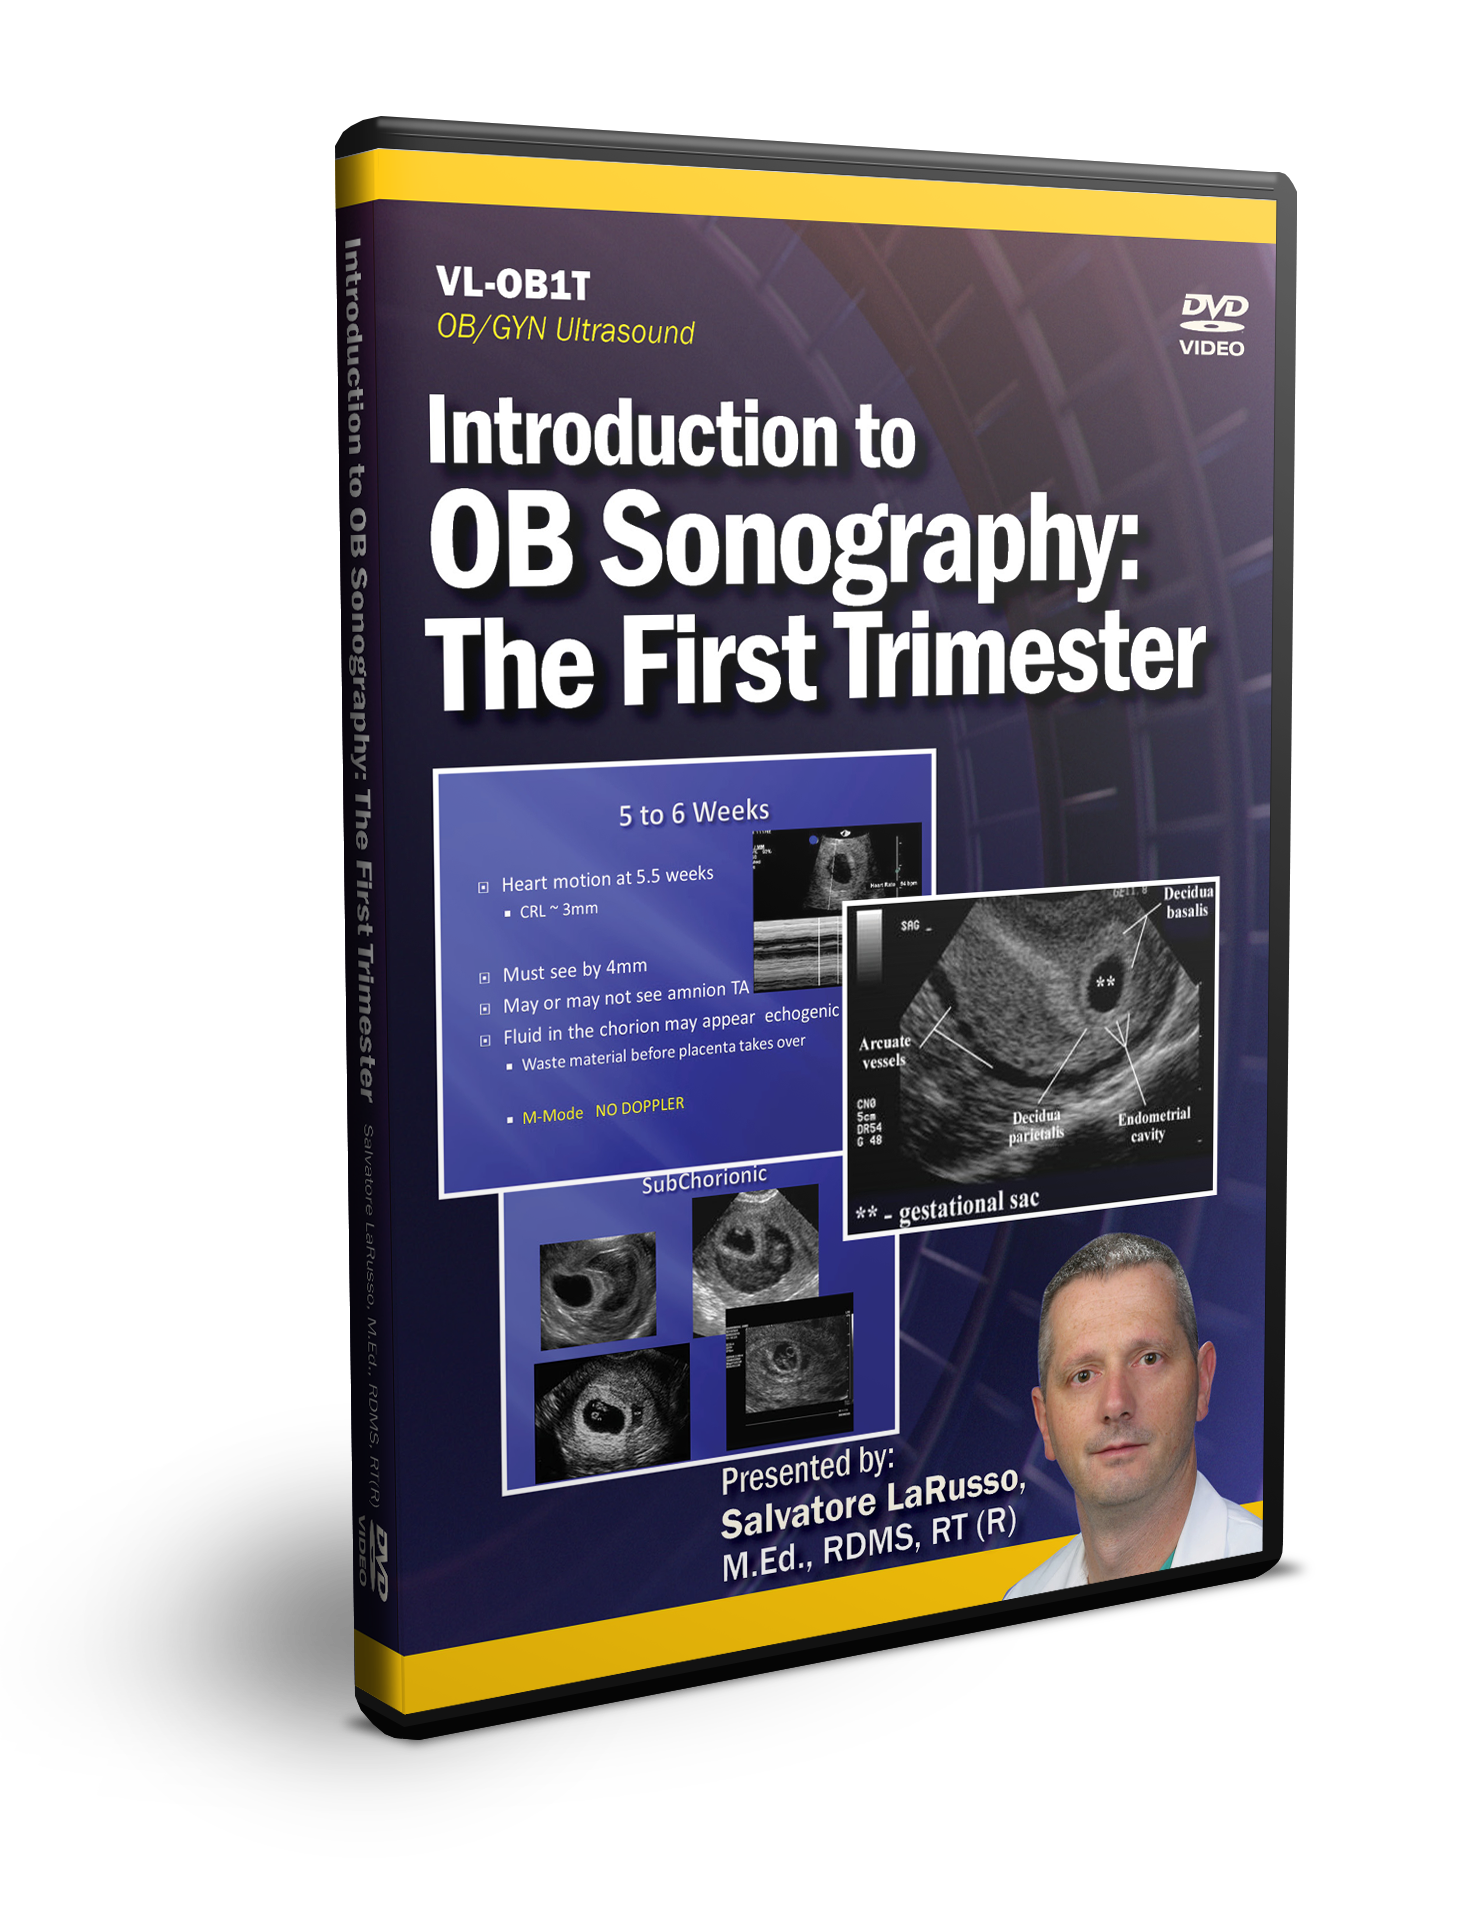 Introduction to OB Sonography The First Trimester